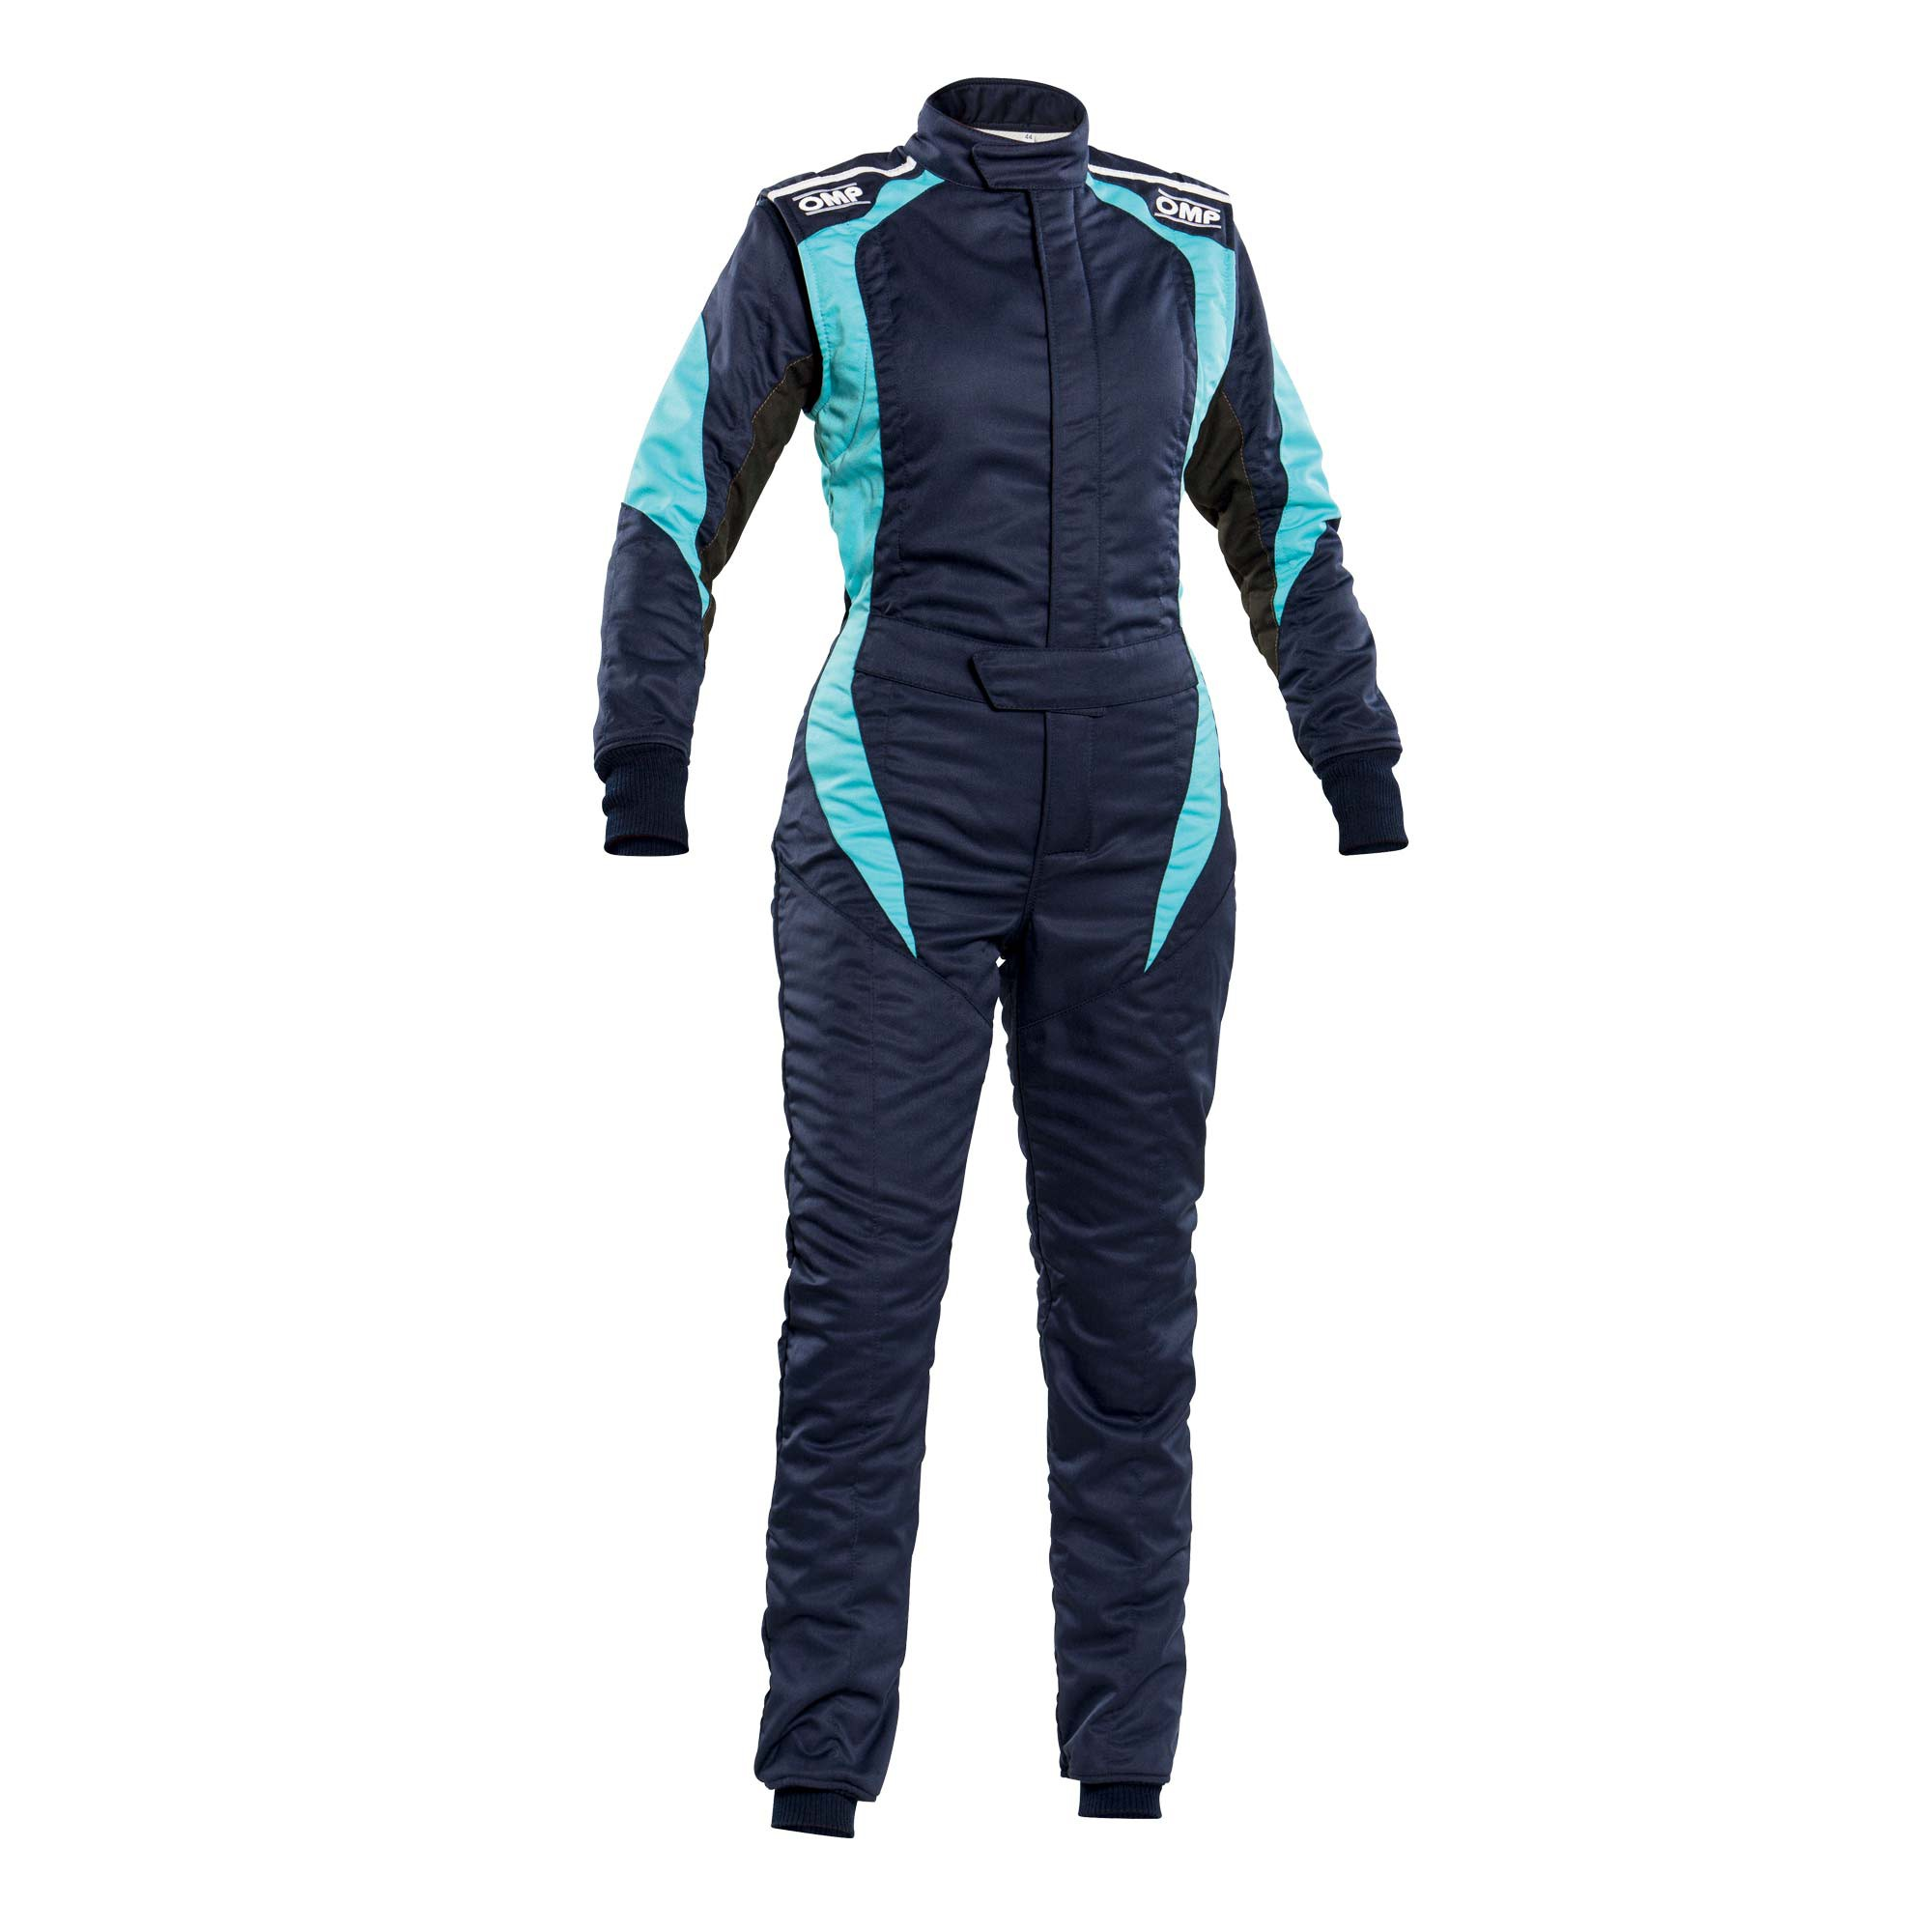 FIRST ELLE OVERALL N.BLUE/TIFFANY SZ. 38 FOR WOMEN - FIA 8856-2018